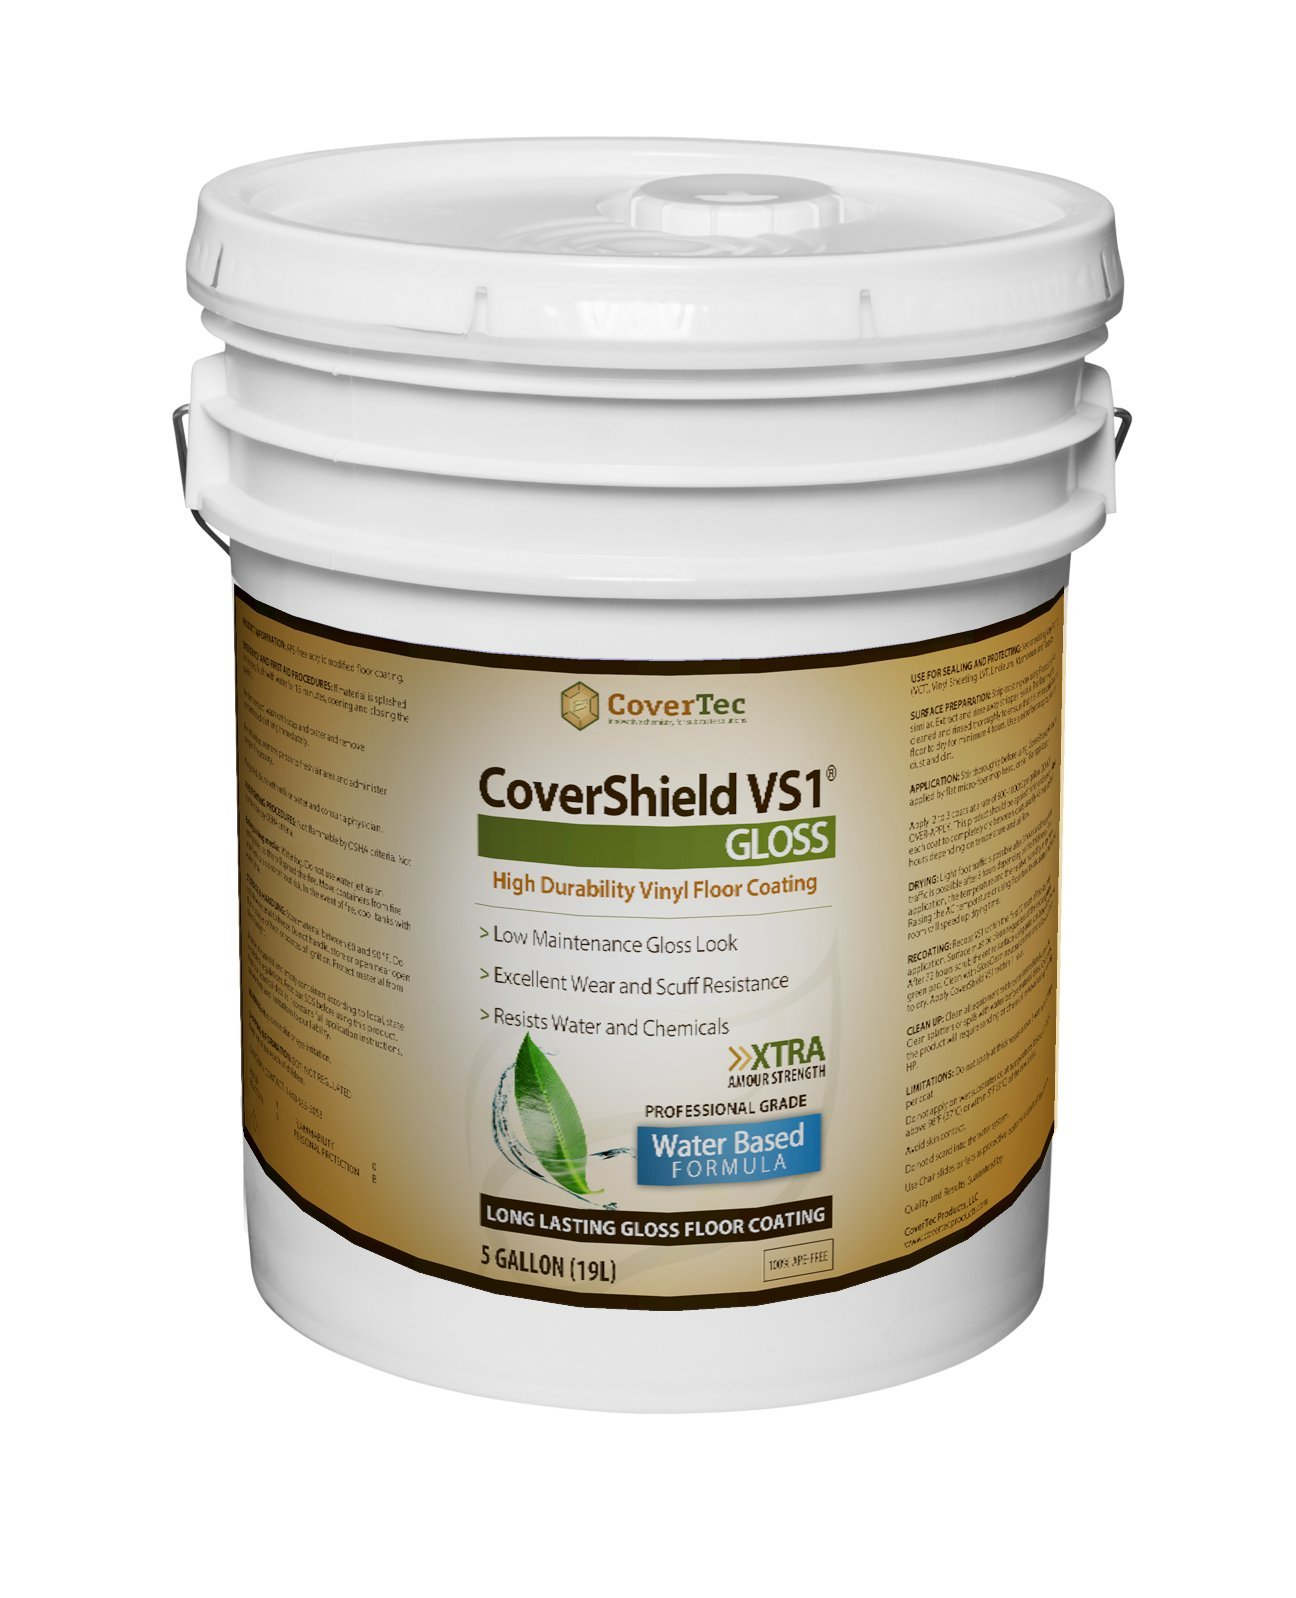 CoverShield VS1 Gloss VCT and Terrazzo Sealer, Fast Drying, Highly Durable, Long Lasting (5 GAL - Prof Grade)